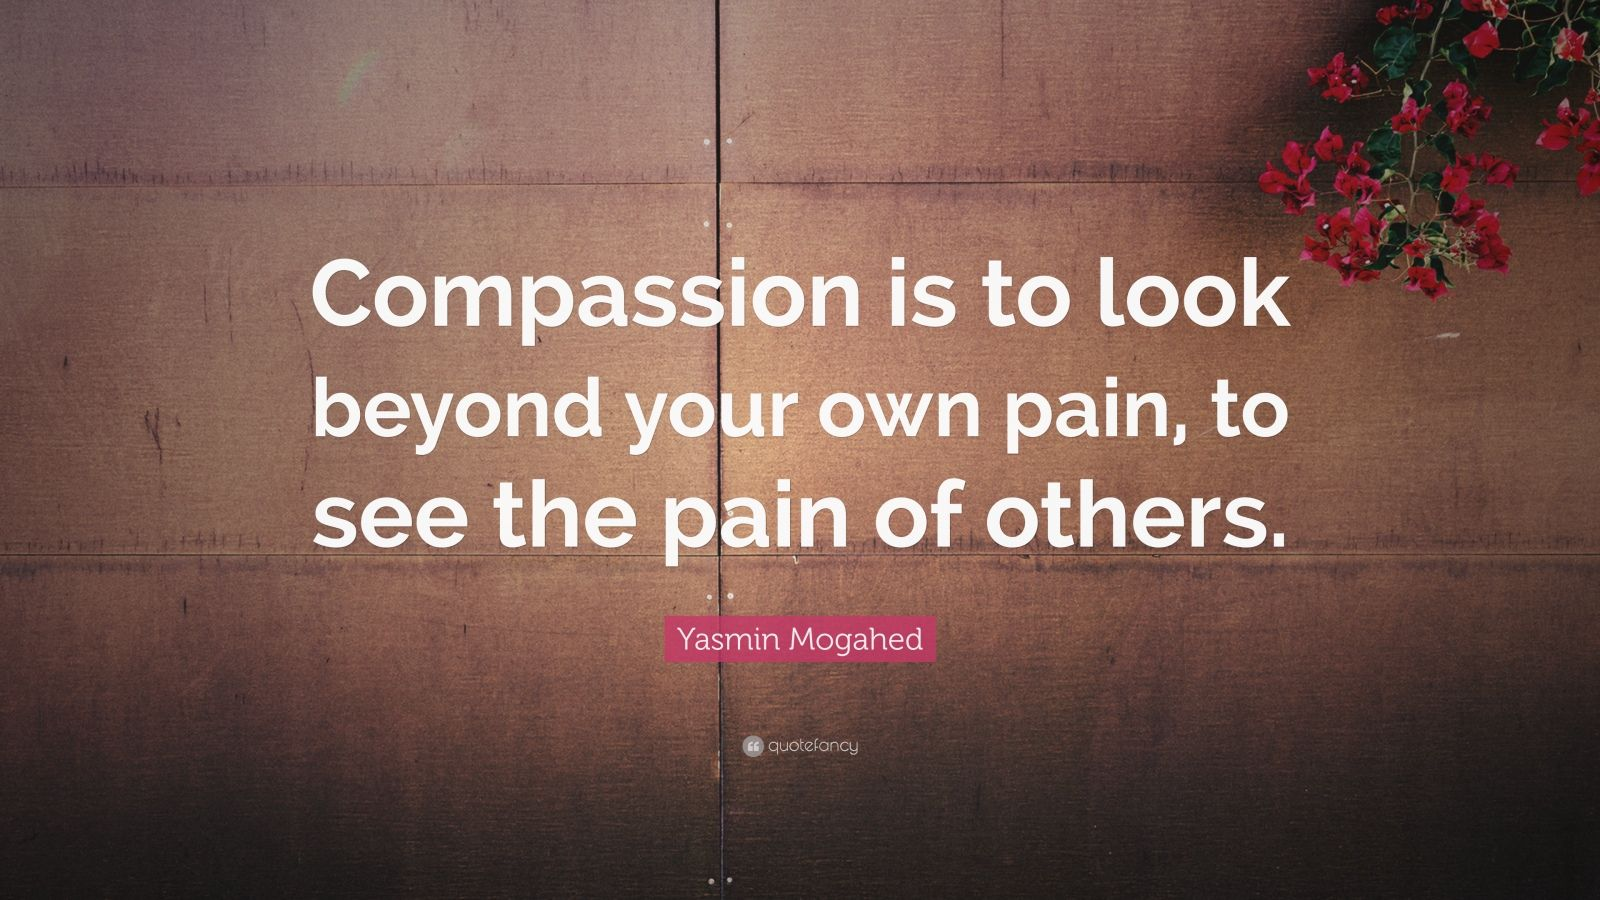 "Compassion Quotes: ""Compassion is to look beyond your own pain, to see the pain of others."" — Yasmin Mogahed"